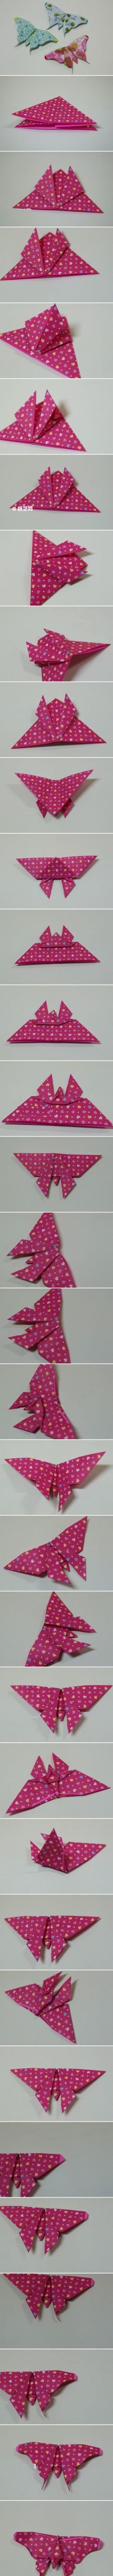 How to fold Origami Butterfly by Kharis